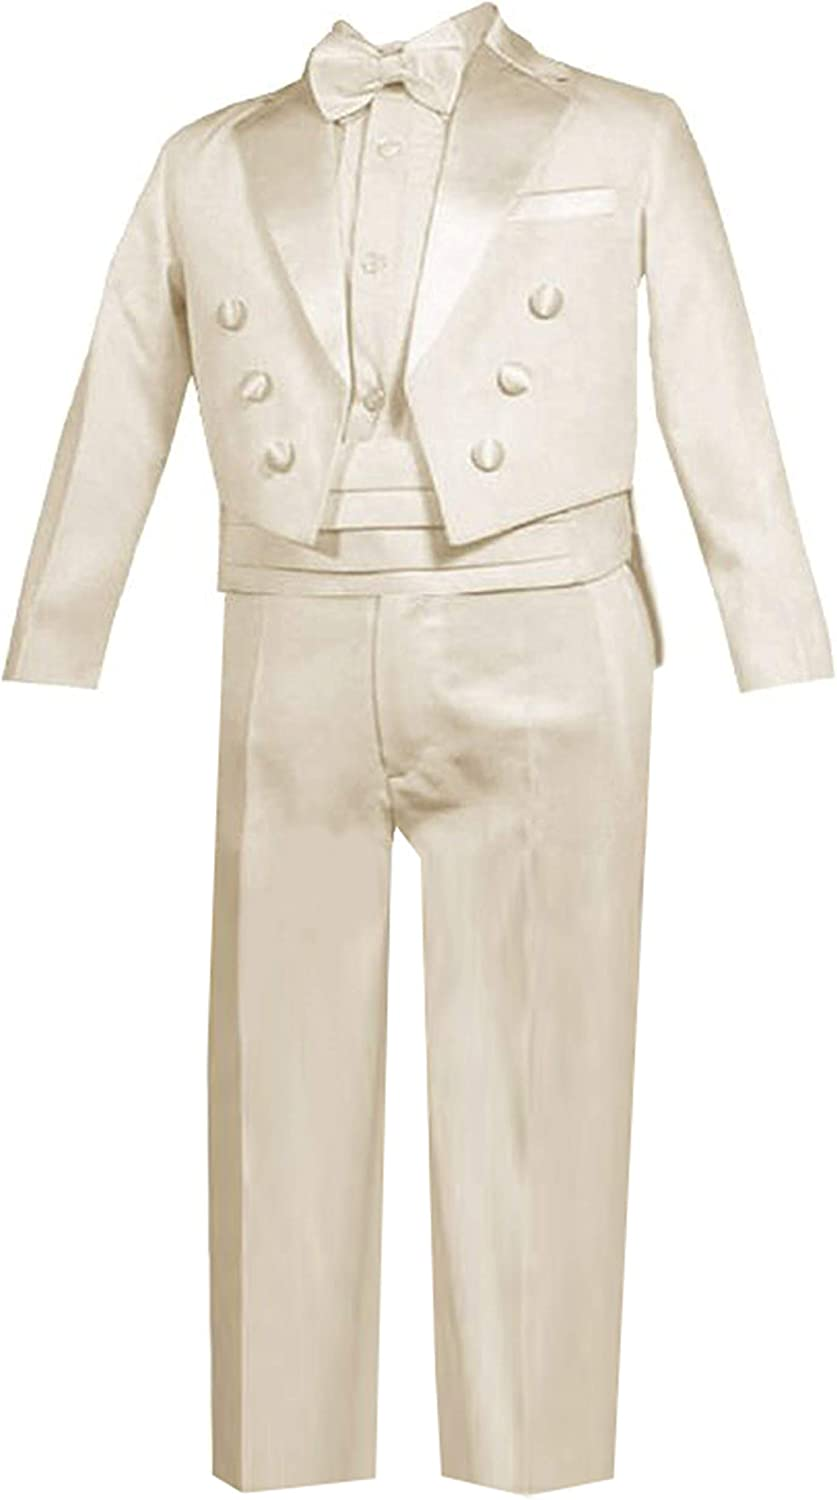 Gino Giovanni Ring Now free shipping Bearer Outstanding Boys Ivory Tuxedo Baby Tail Set from t